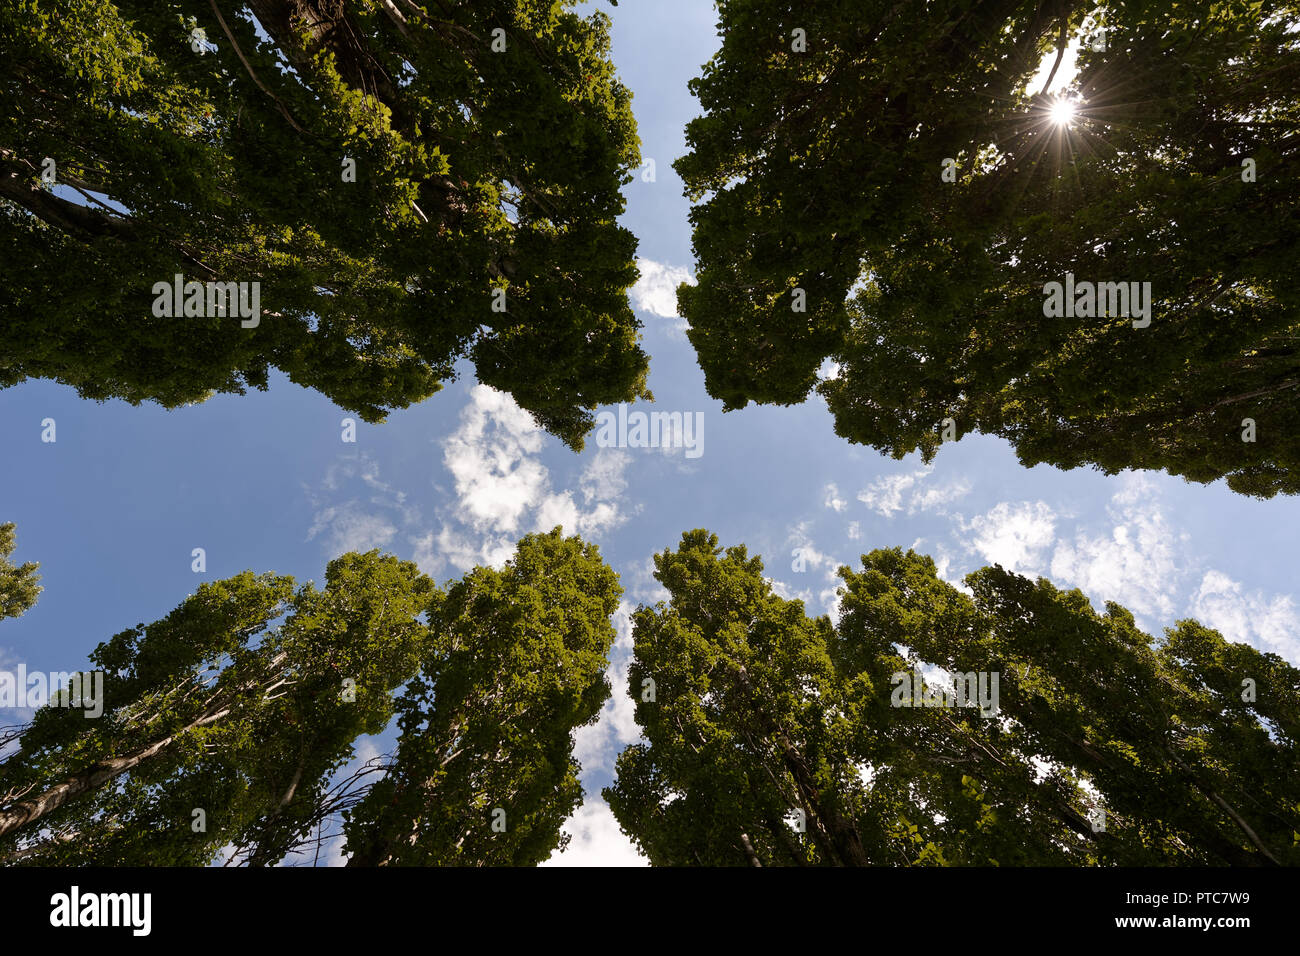 Perspective view from below - Stock Image